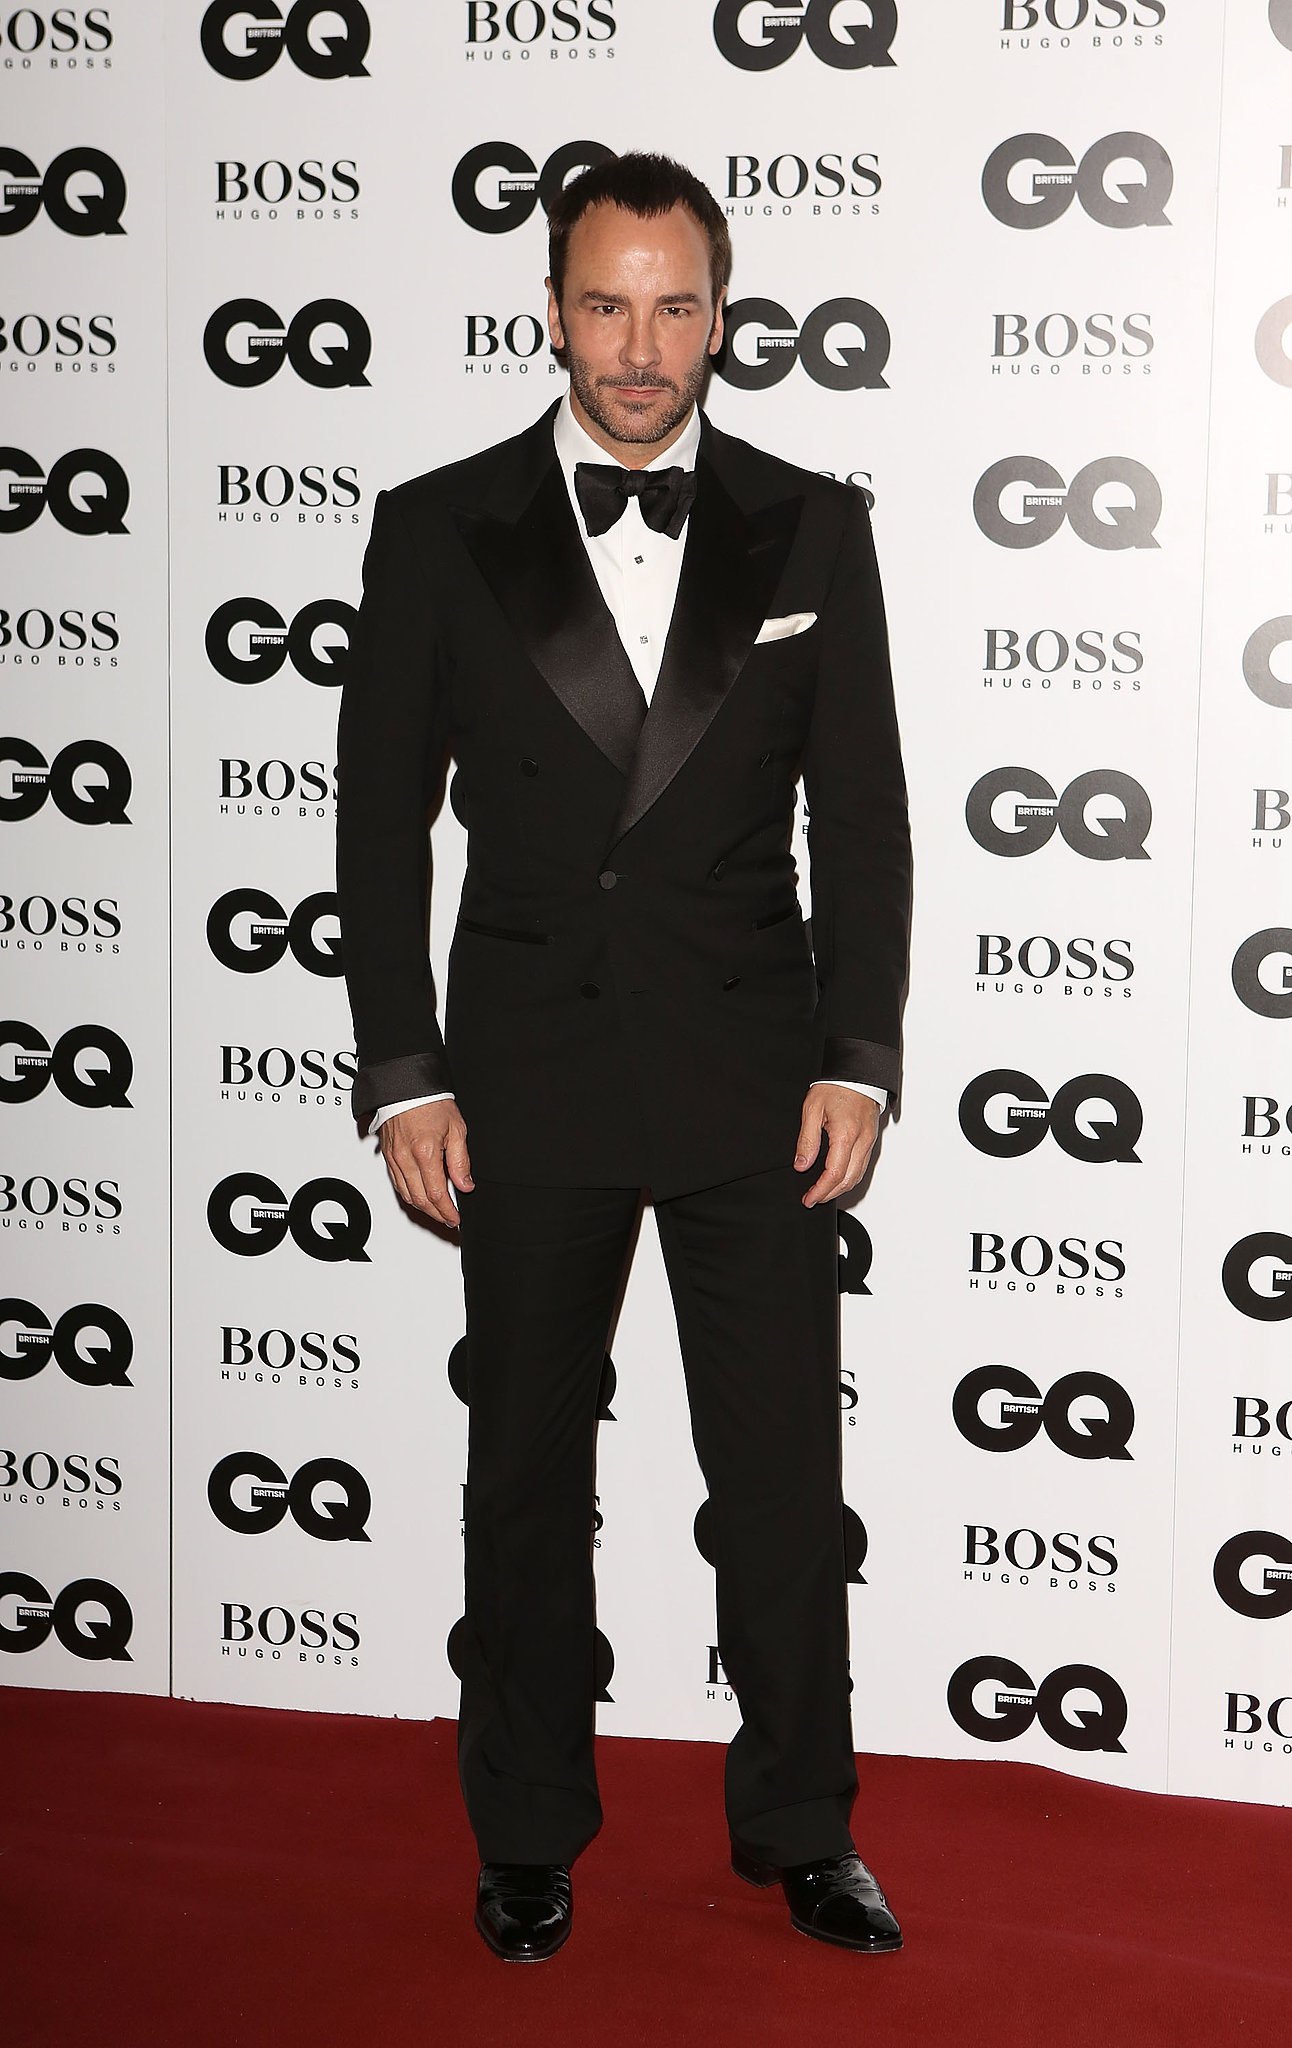 tom ford looked classic in his suit and tie while at the. Black Bedroom Furniture Sets. Home Design Ideas